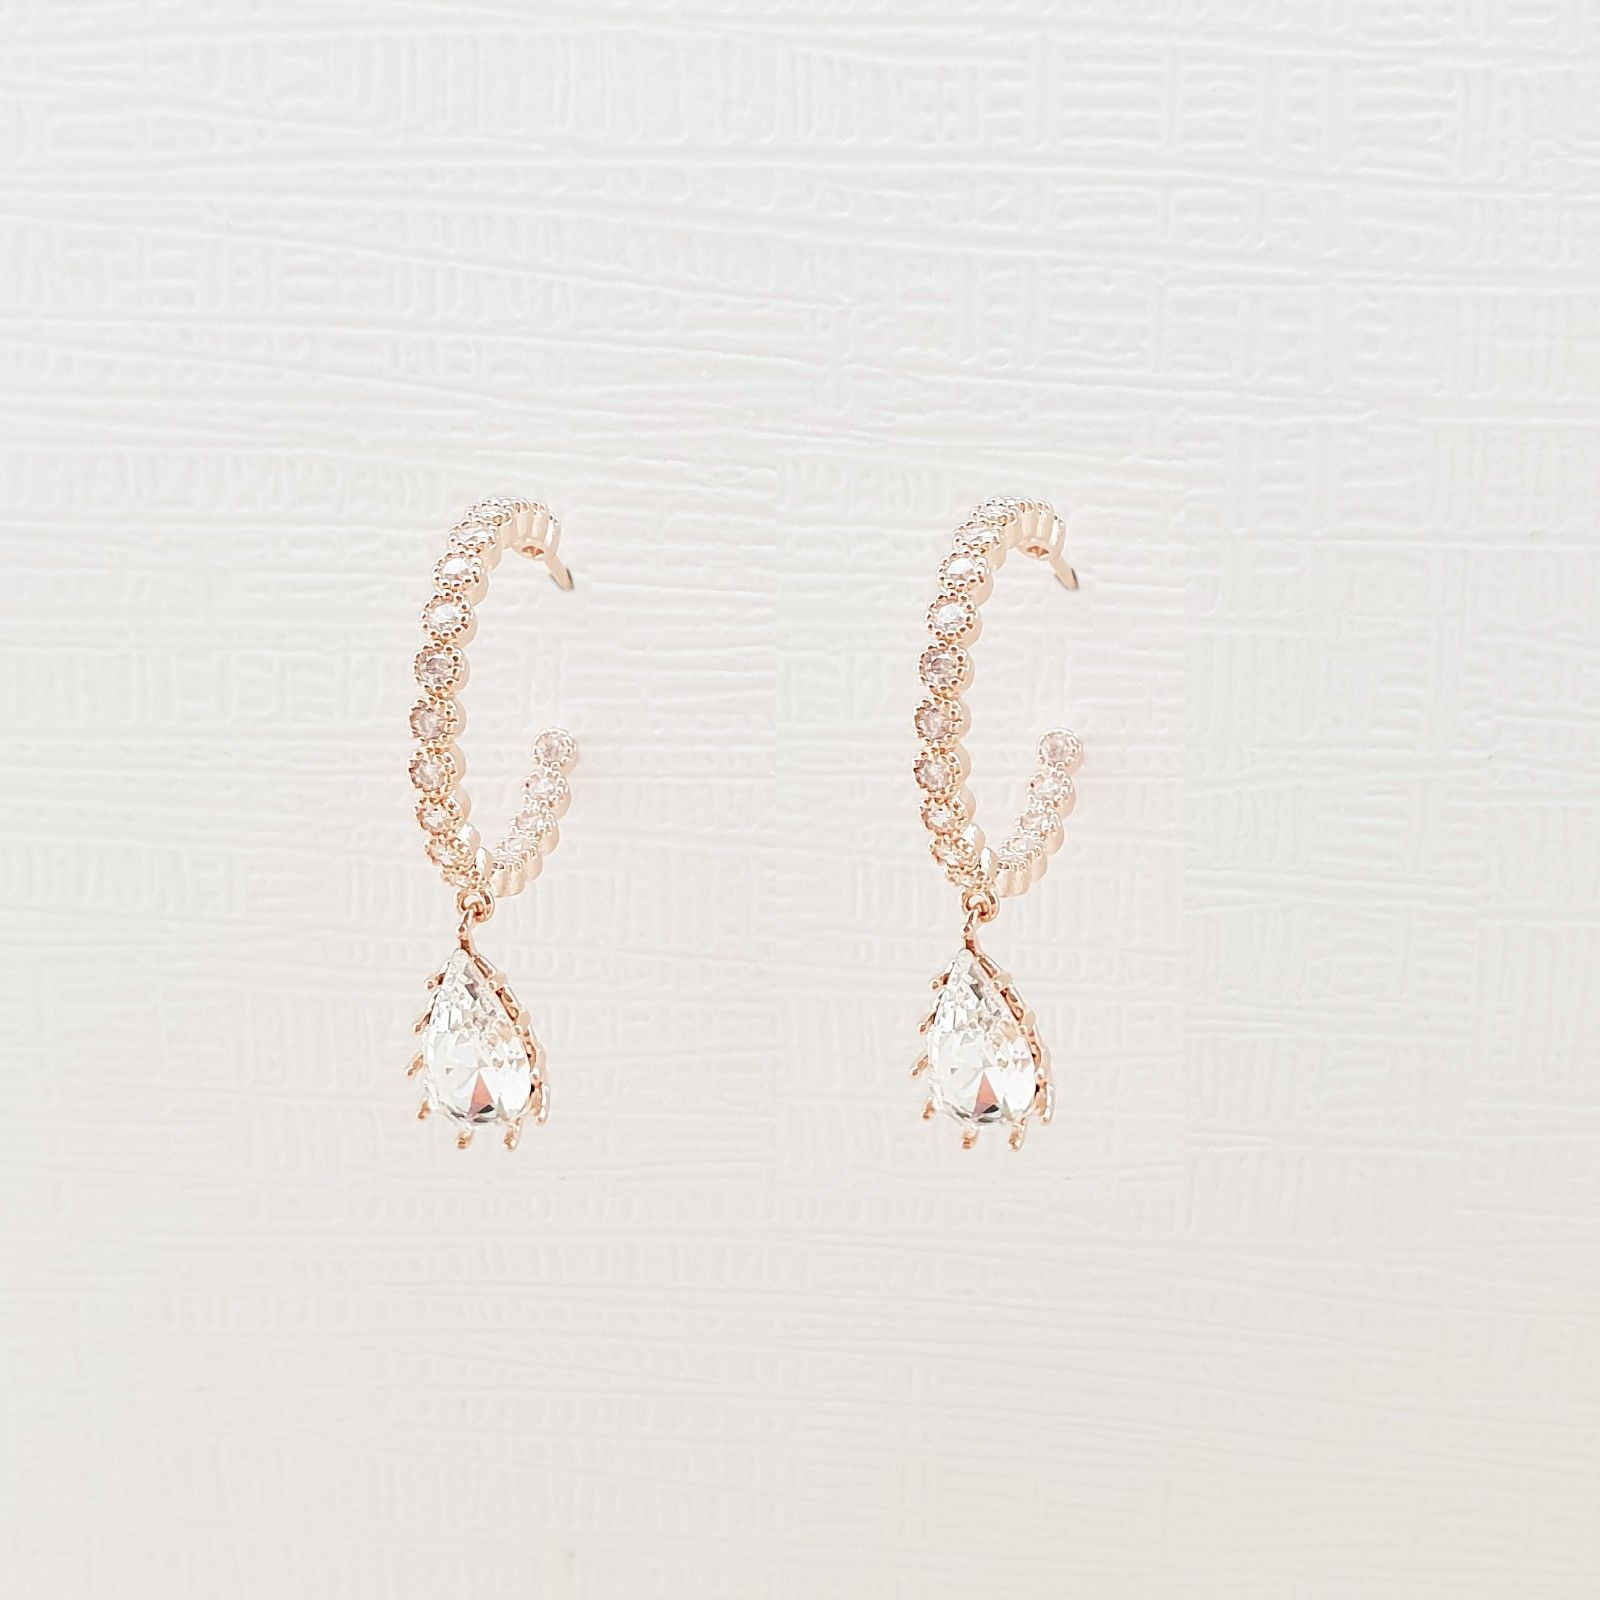 Hoop Water Drop Made With Swarovski Crystal Dangle Earrings Rose Gold Tone Pink image 3